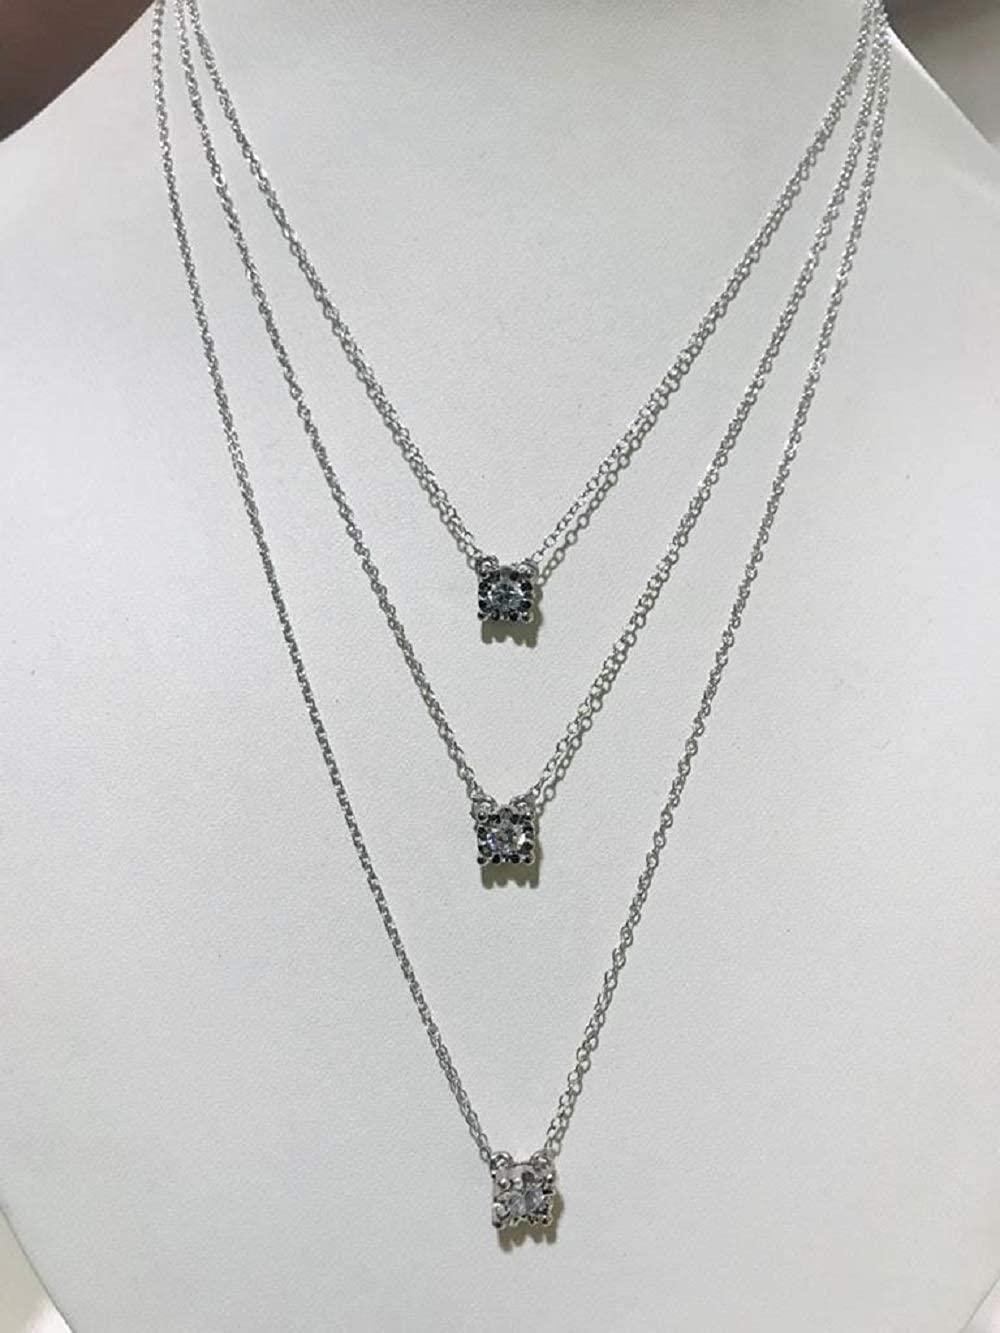 Silvercartvila 5mm D//VVS1 Solitaire Pendant Necklace with Diamond Accents In .925 Sterling Silver